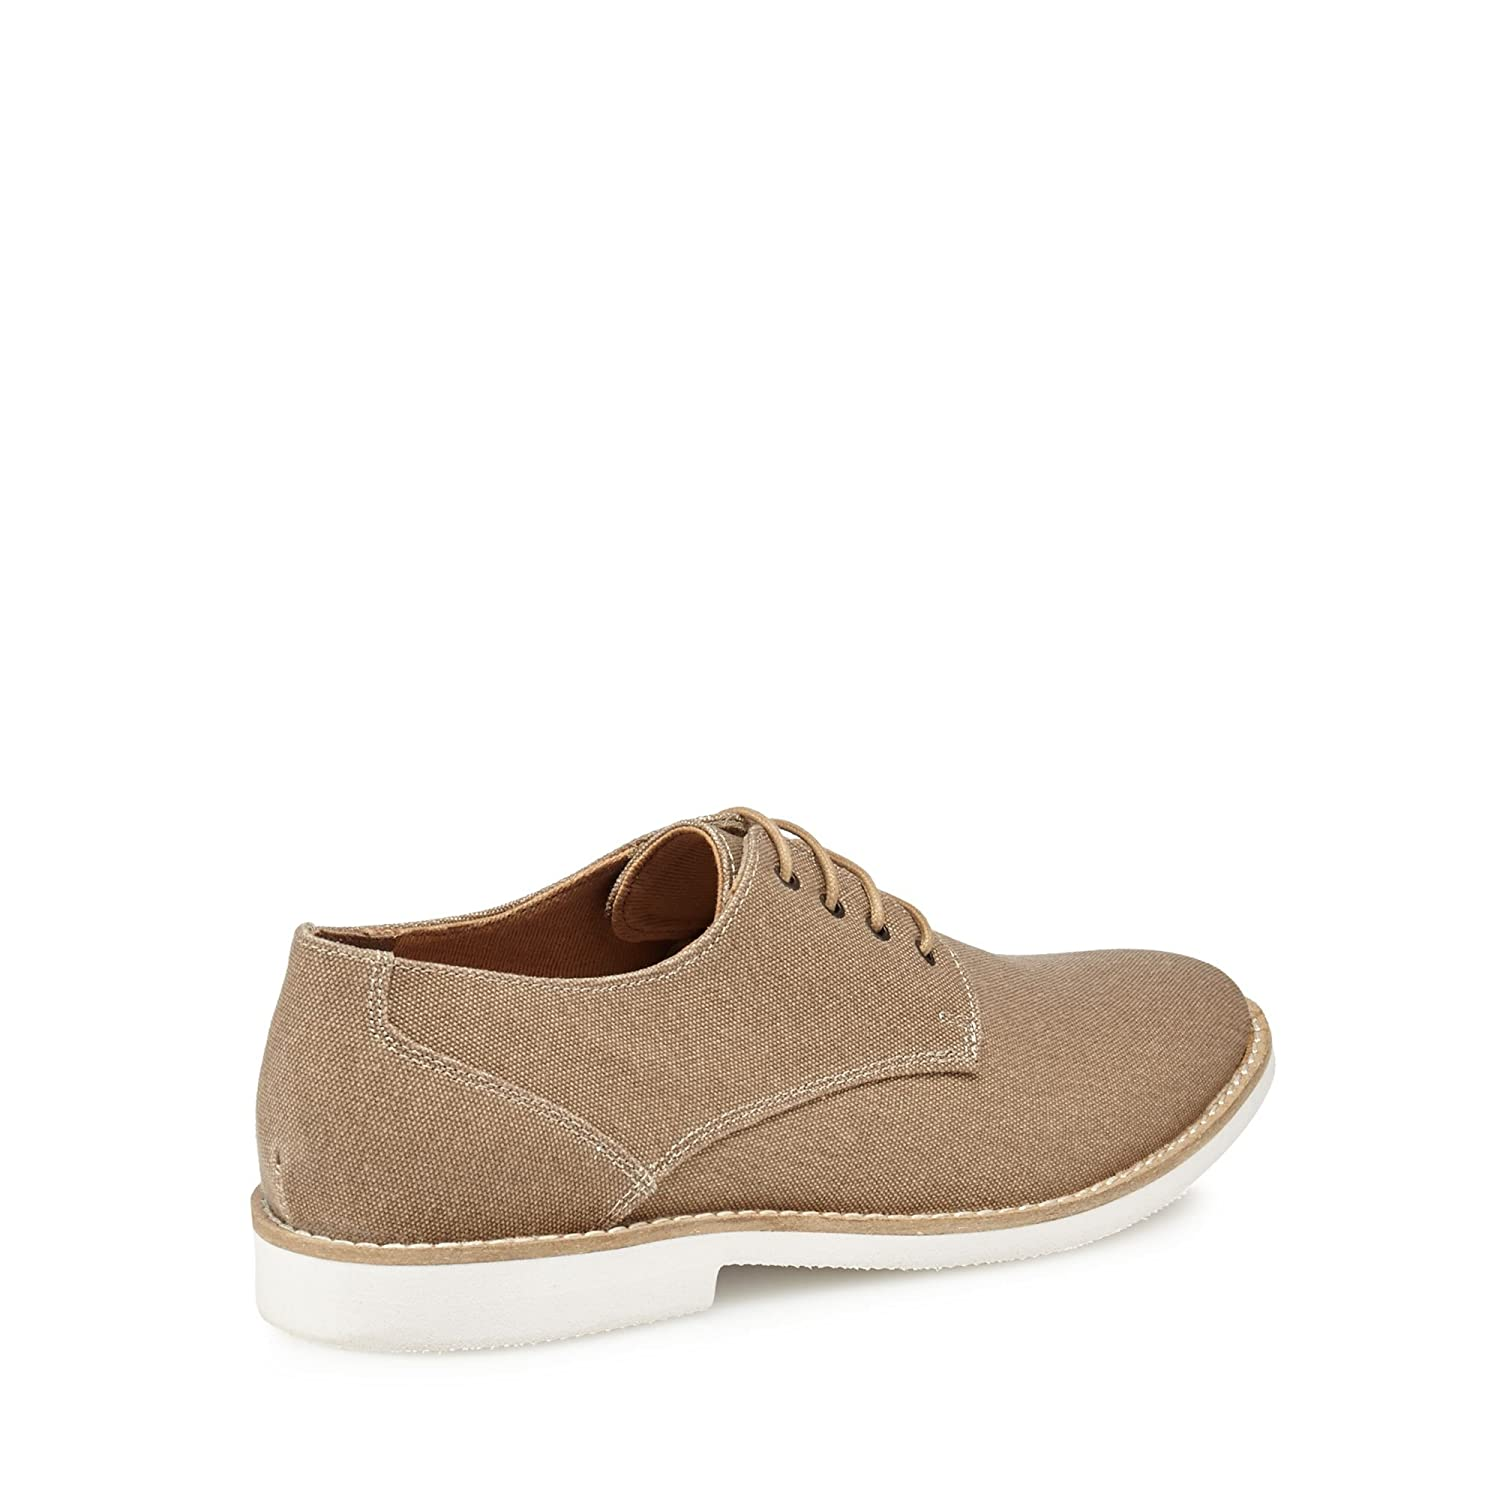 99eda3bfbc8 Red Herring Men Brown Canvas  Margaux  Derby Shoes  Red Herring   Amazon.co.uk  Clothing